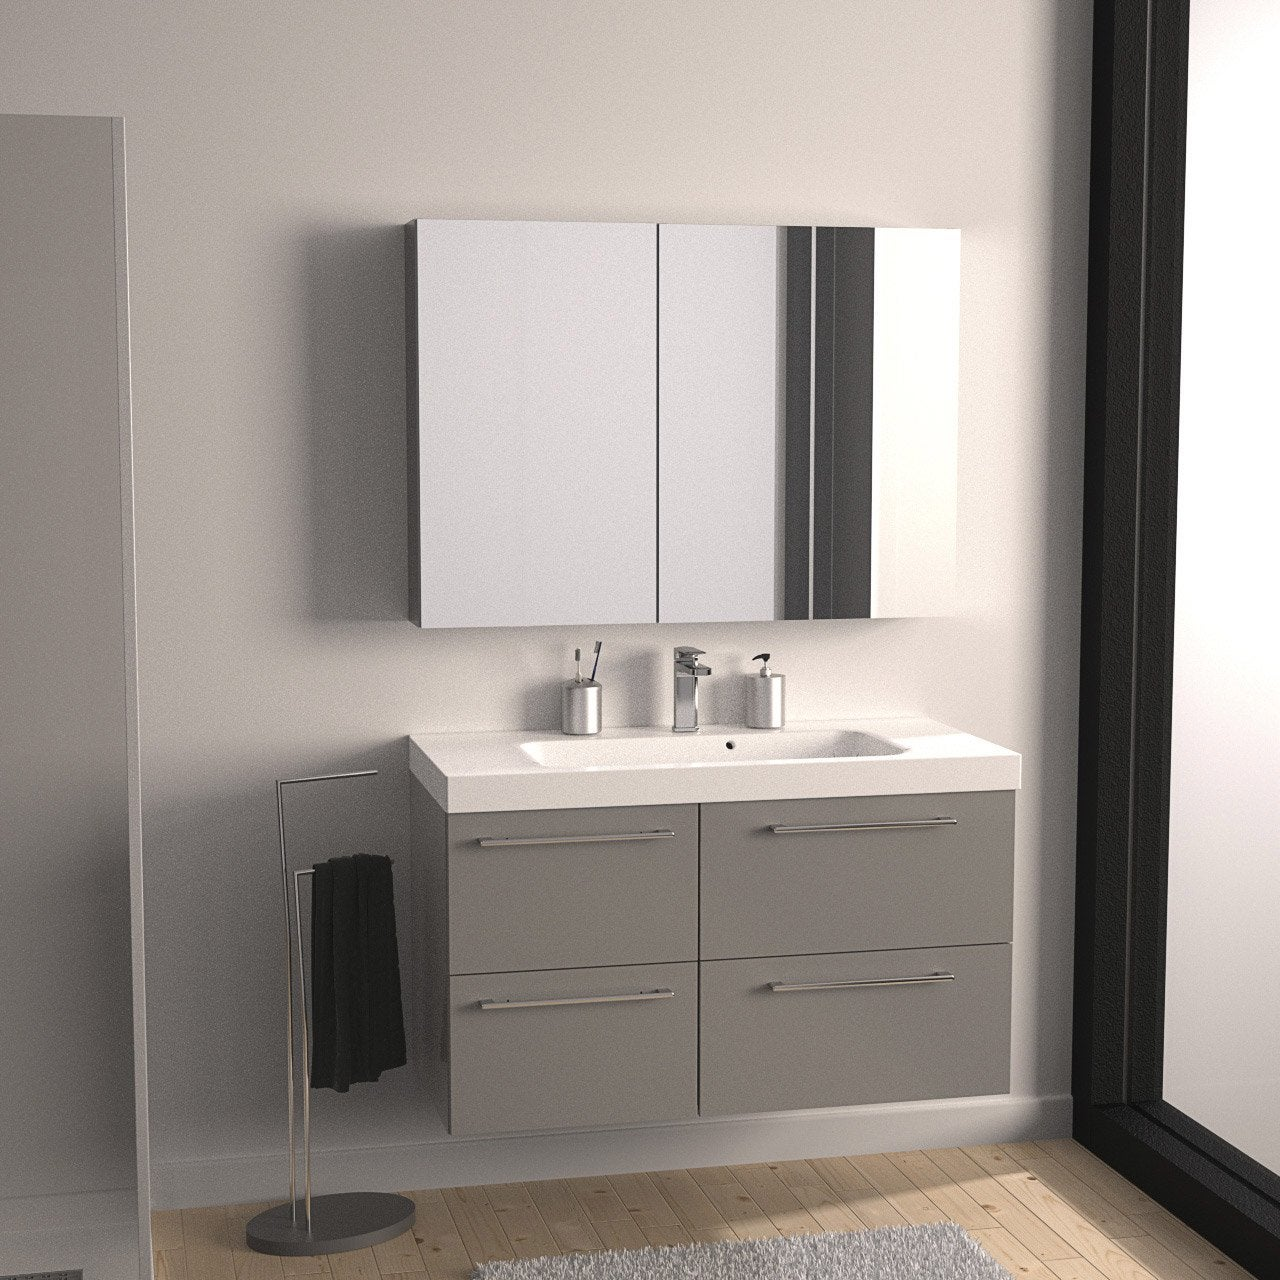 meuble de salle de bains remix gris galet n 3 4 tiroirs leroy merlin. Black Bedroom Furniture Sets. Home Design Ideas